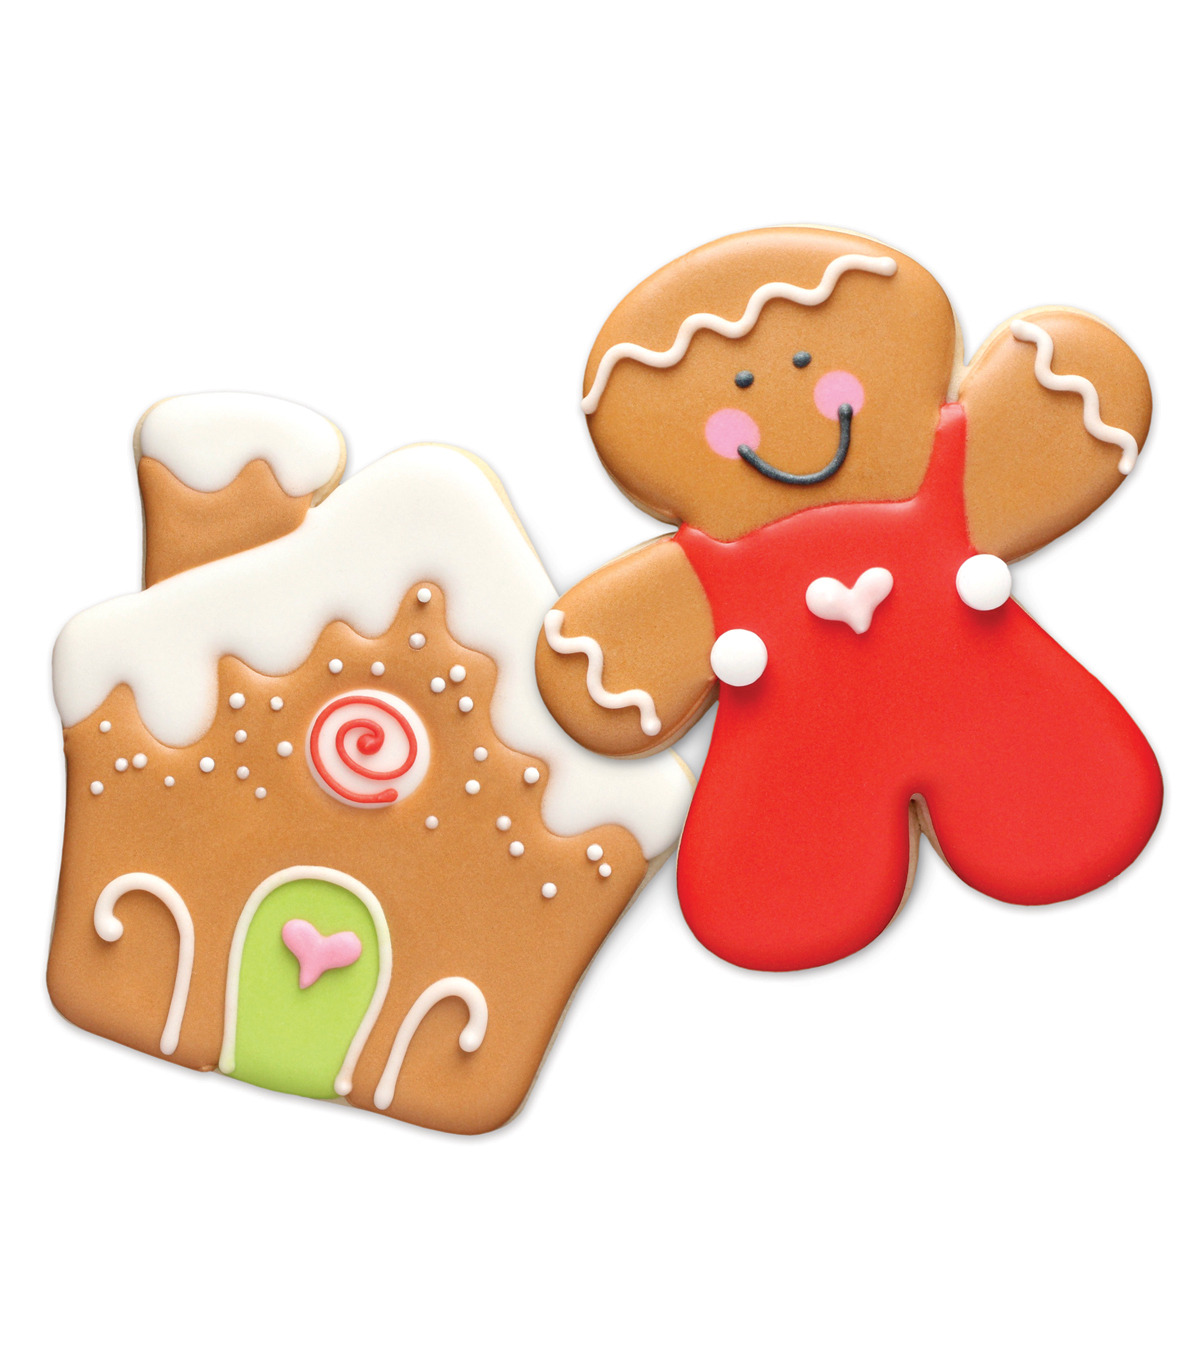 Sweet Sugarbelle Christmas Cookie Cutter Kit Gingerbread